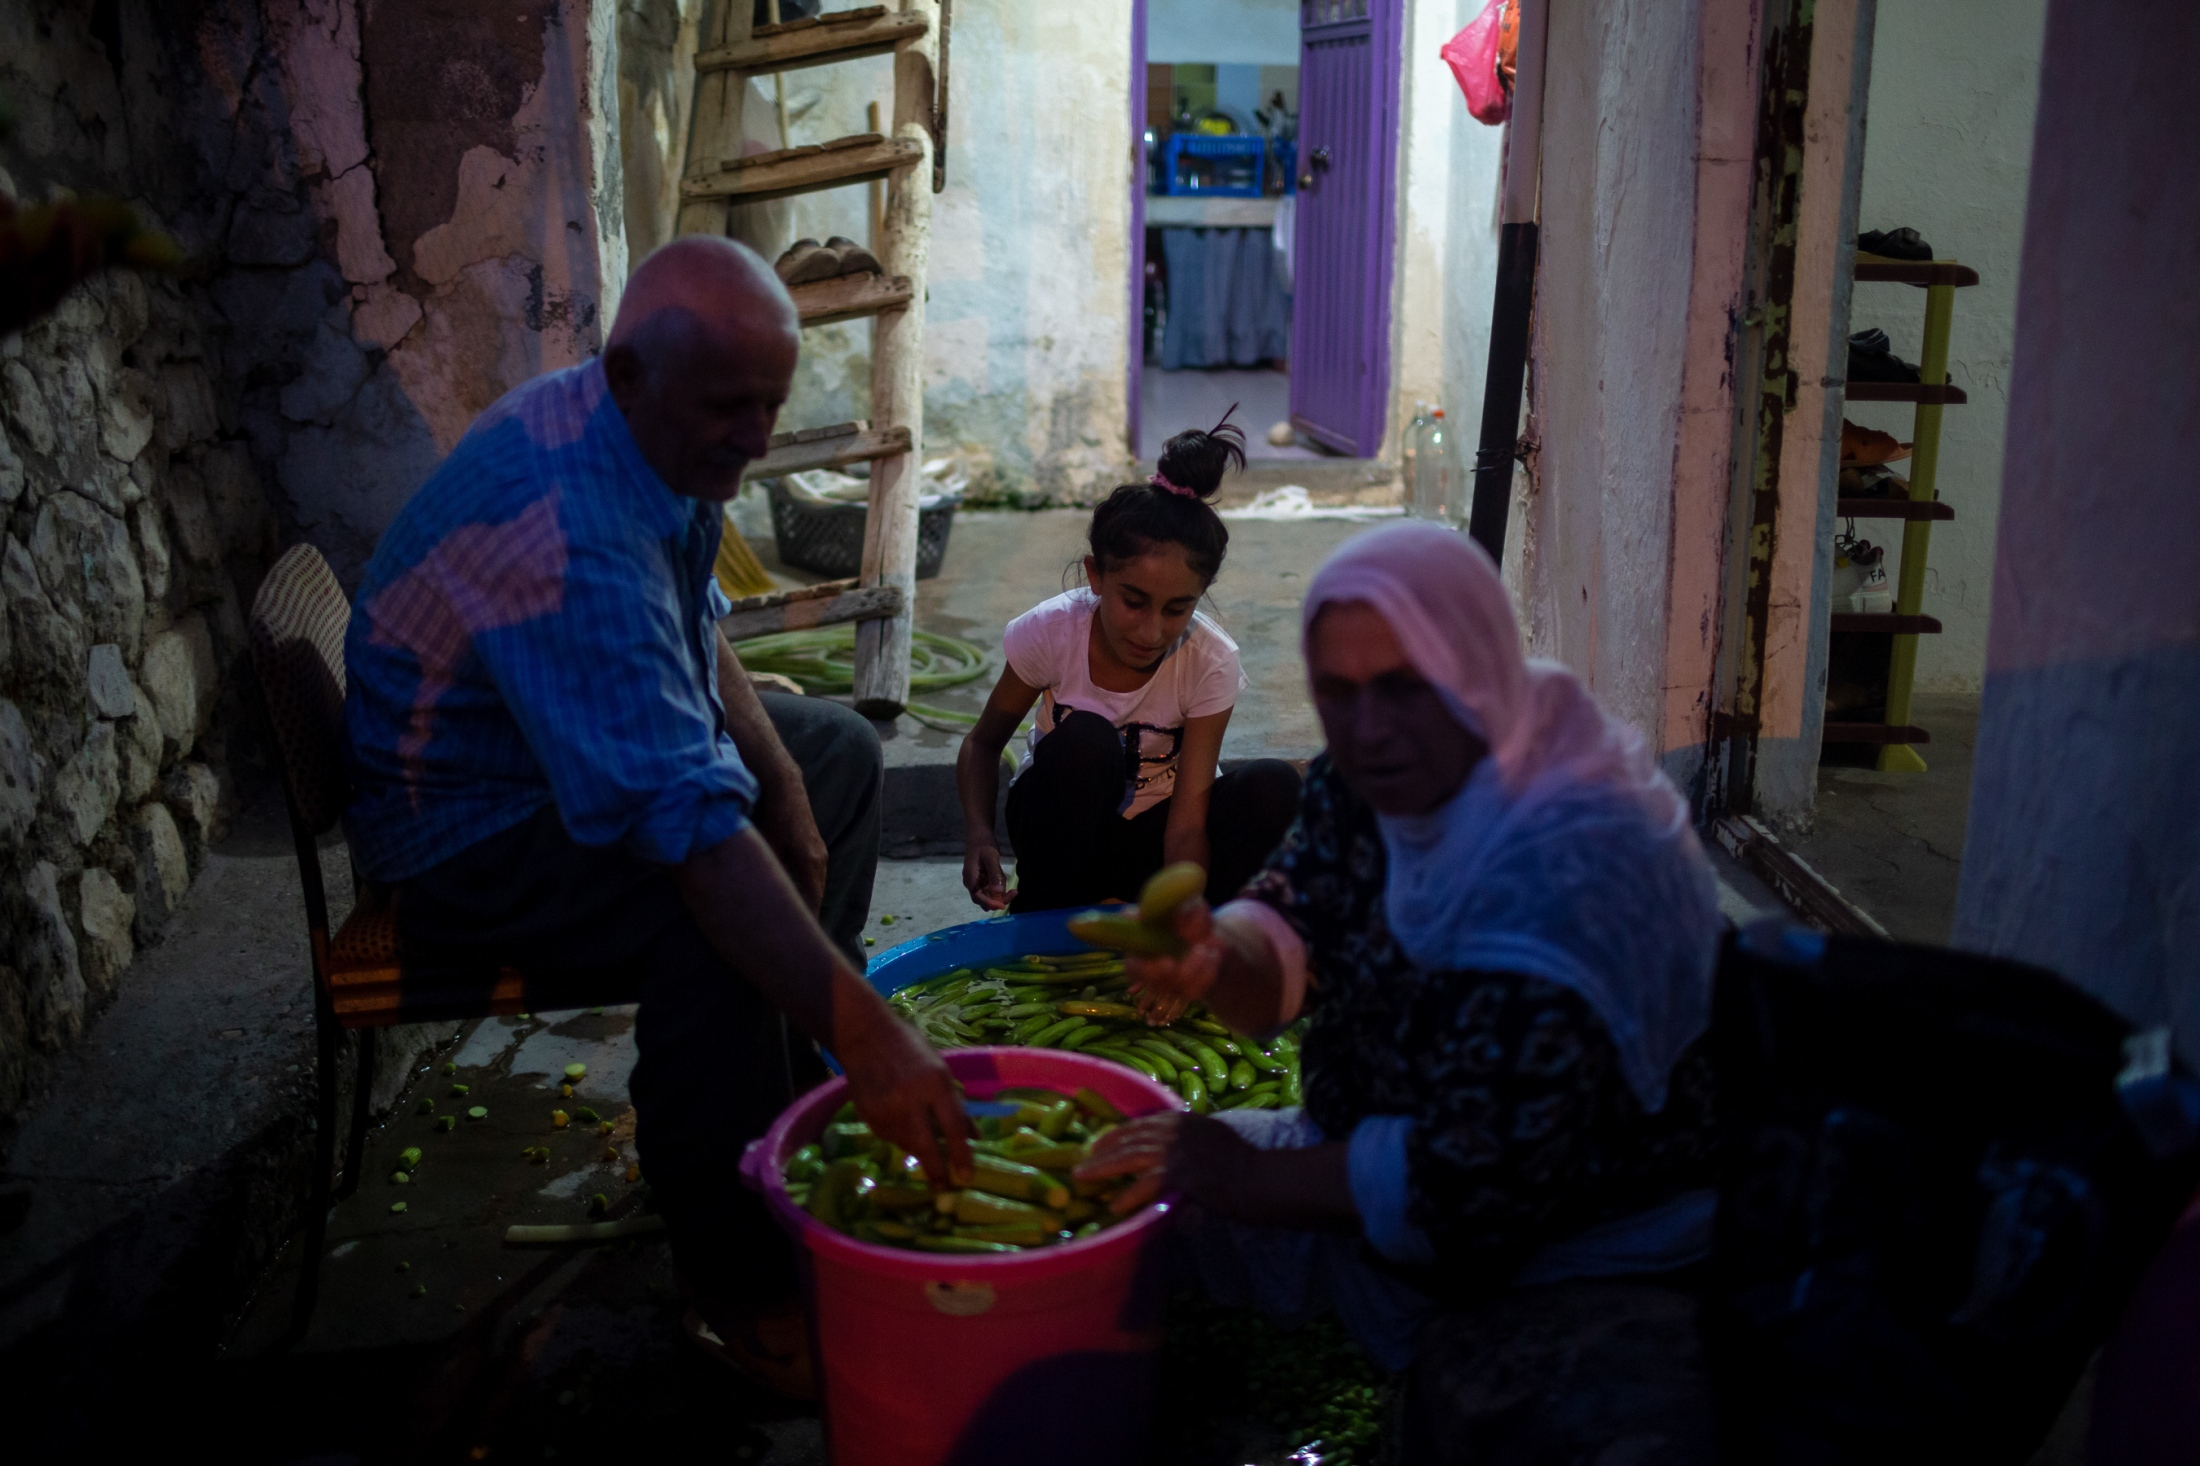 A family clean their crop of cucumbers together. These Kurdish residents have lived off of their land, cattle and various commerce for generations. It is unclear as to how they will survive when they move into apartments the Turkish Government has built for them.